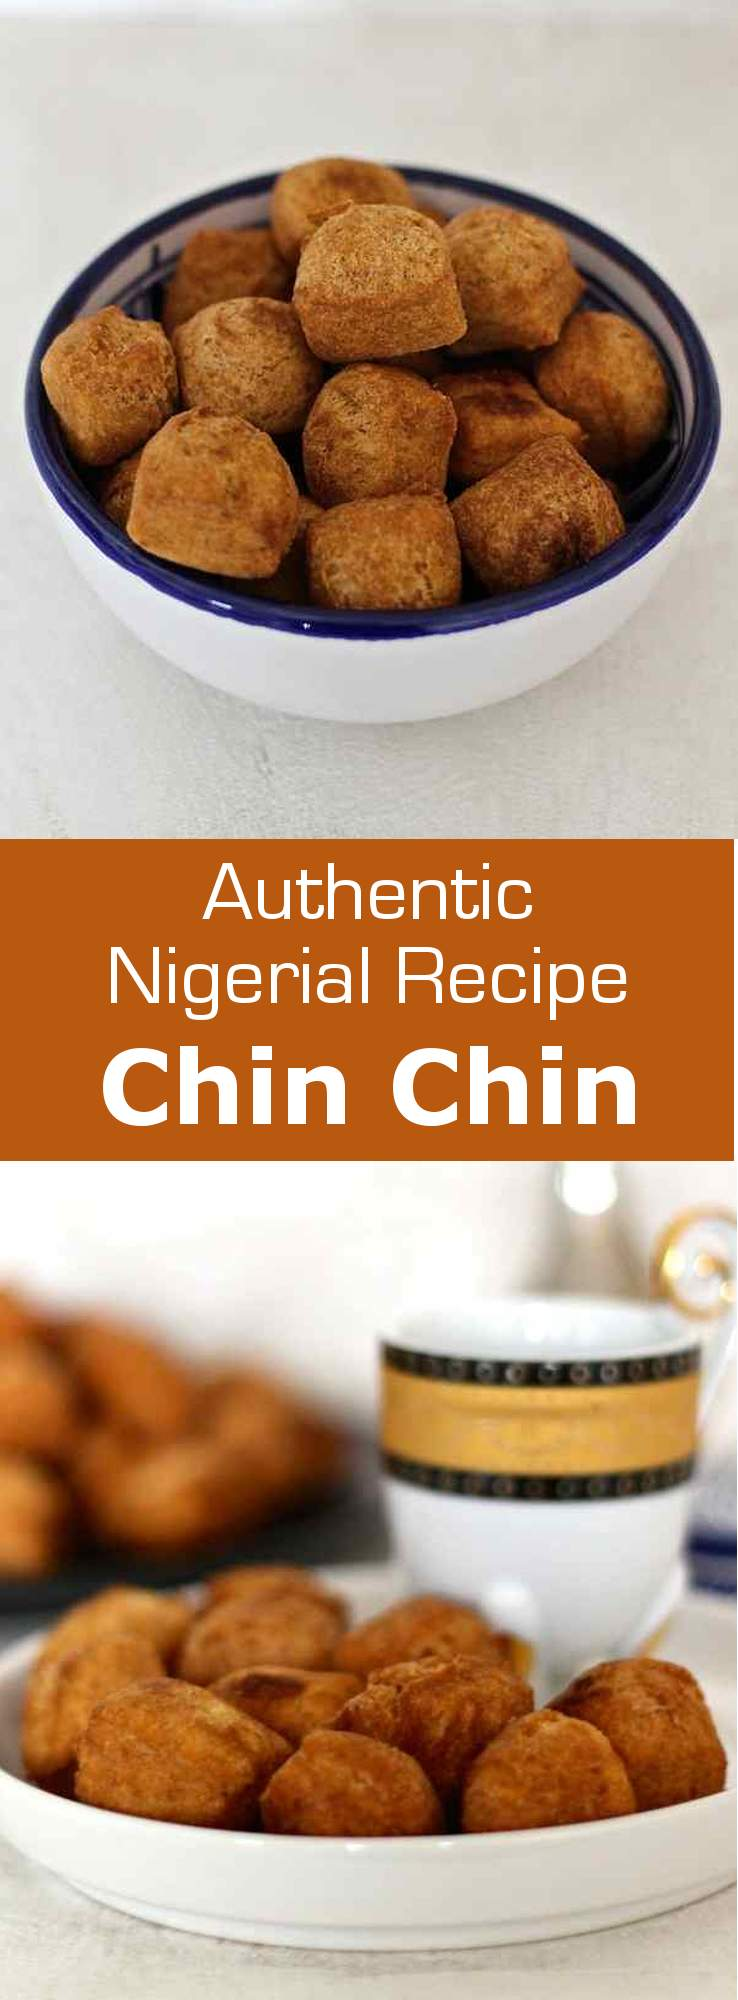 Chin chin are small fried snacks from West Africa, that are sweetened and flavored with nutmeg. #nigeria #africa #vegetarian #196flavors